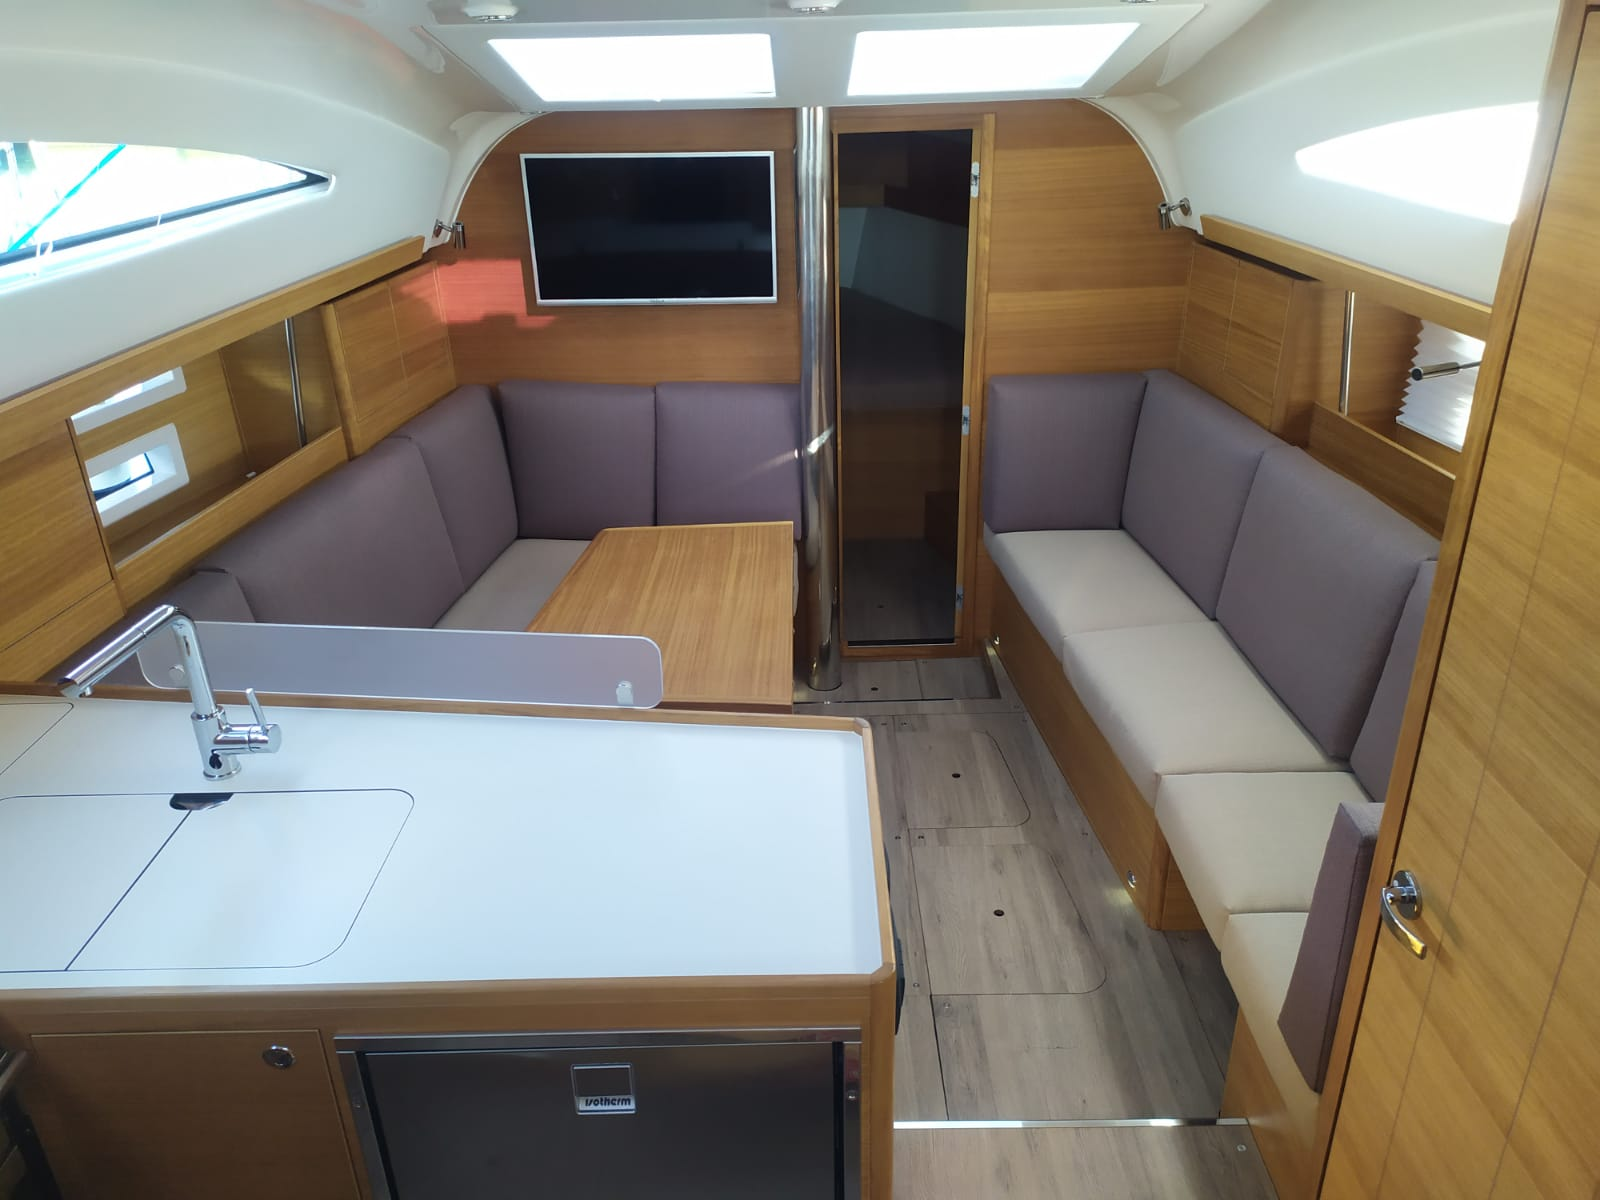 Elan Impression 40.1 (Baby Shark with A/C) Interior image - 25